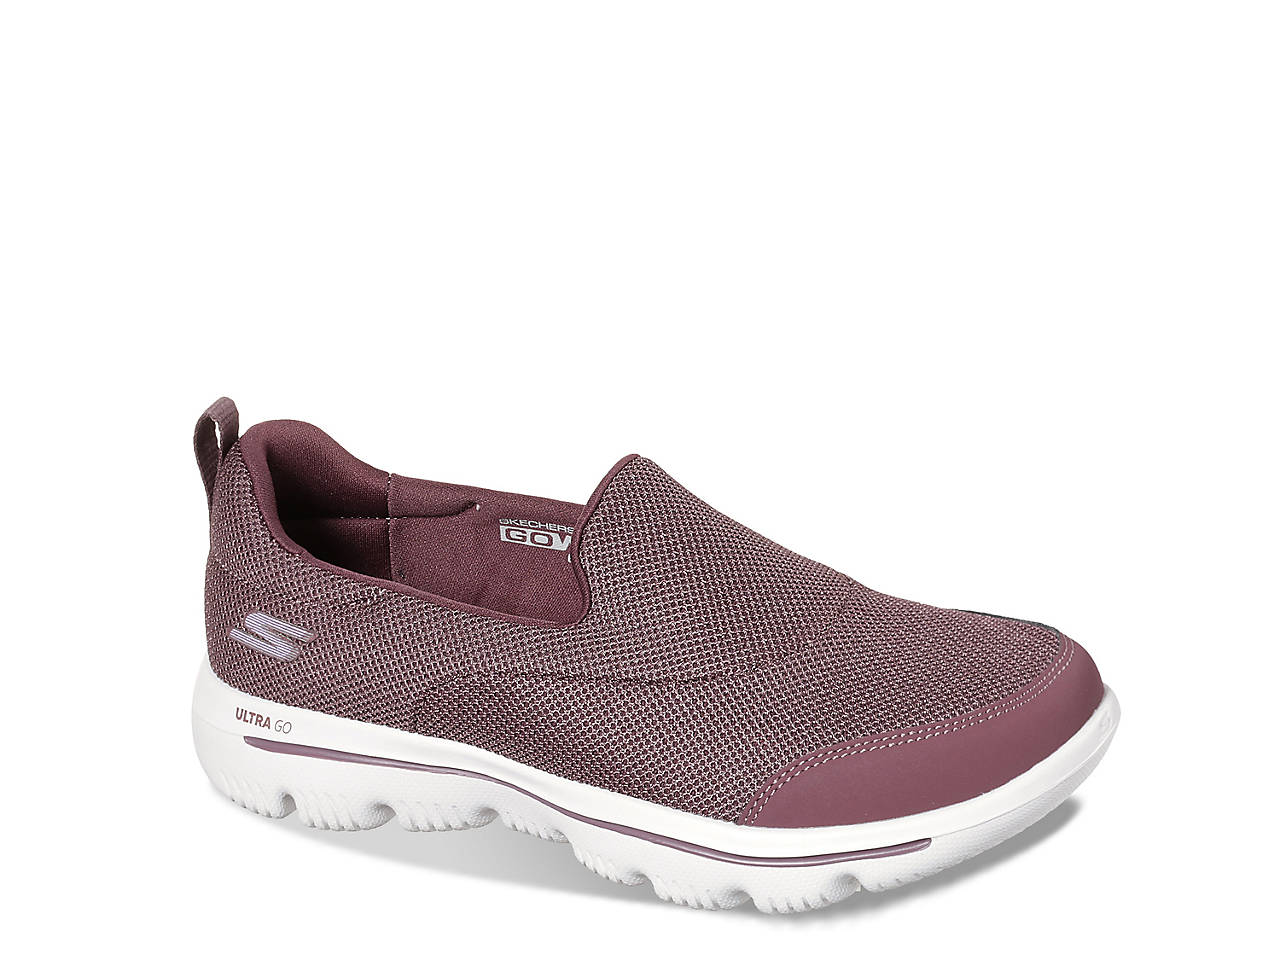 fabfd0e4dfc50 Skechers GOWalk Evolution Ultra Rapids Slip-On Sneaker - Women s ...